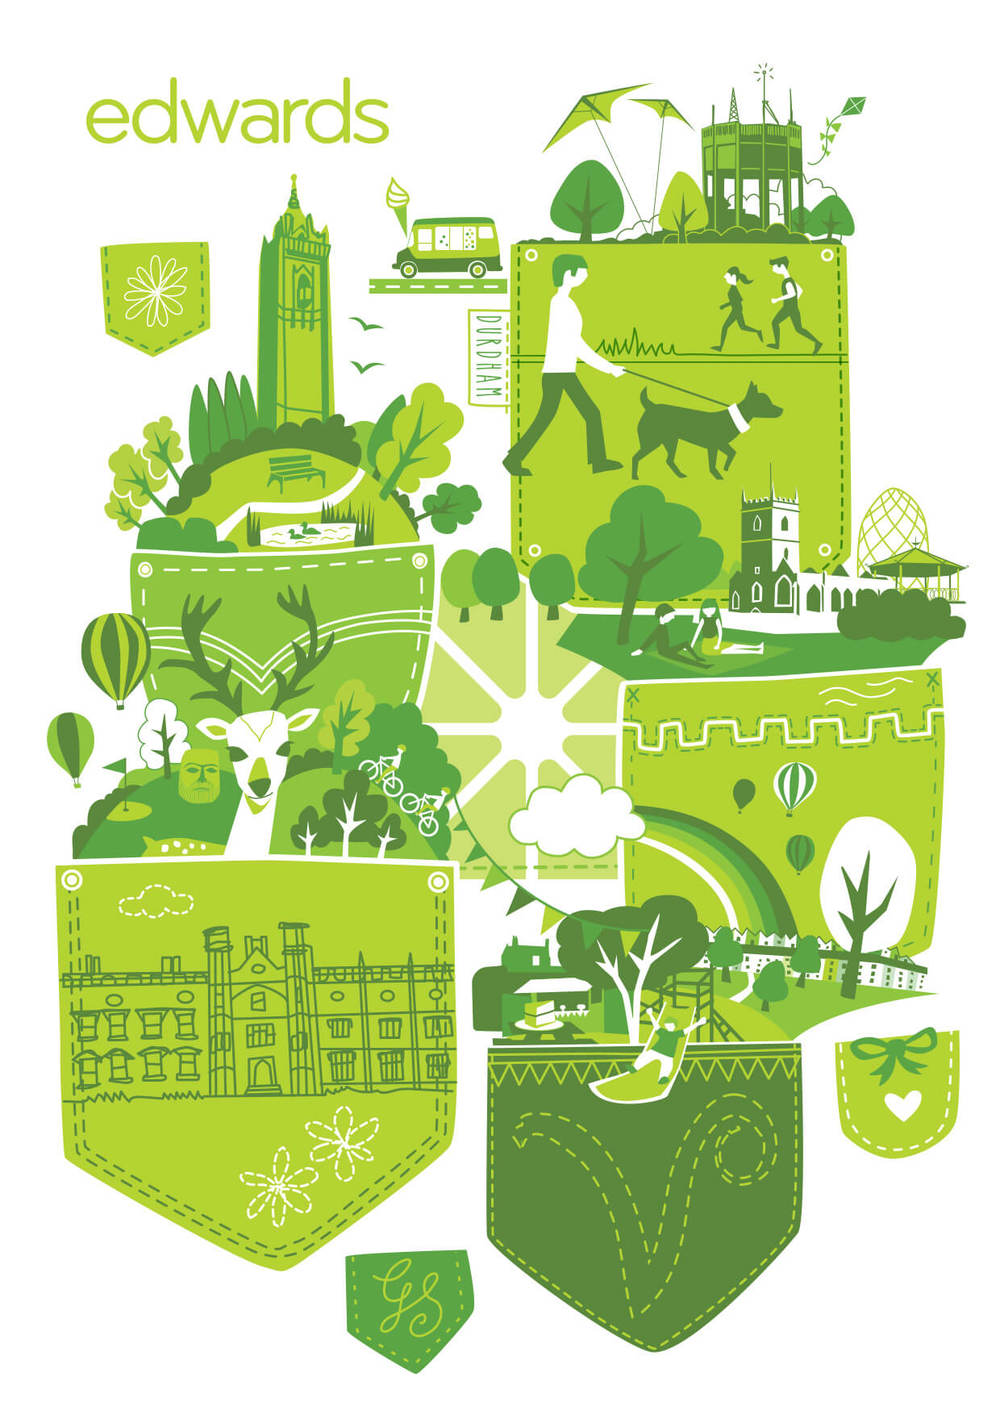 Edwards 'I Love Bristol' | Green Pockets